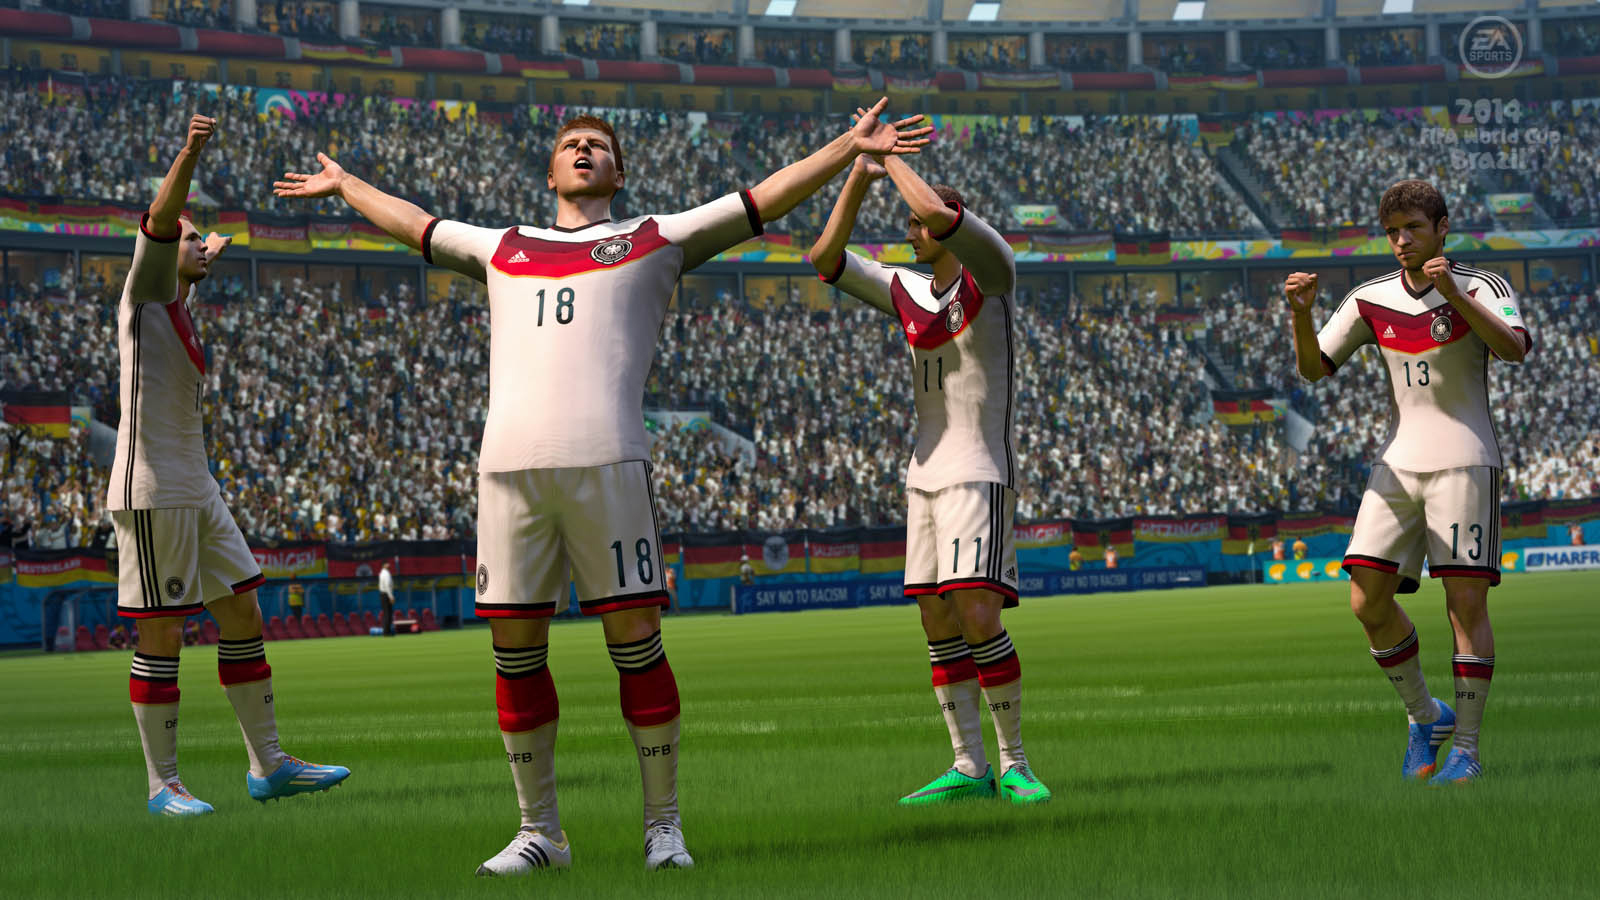 Fifa 18 world cup video game: when is it released, how to download.